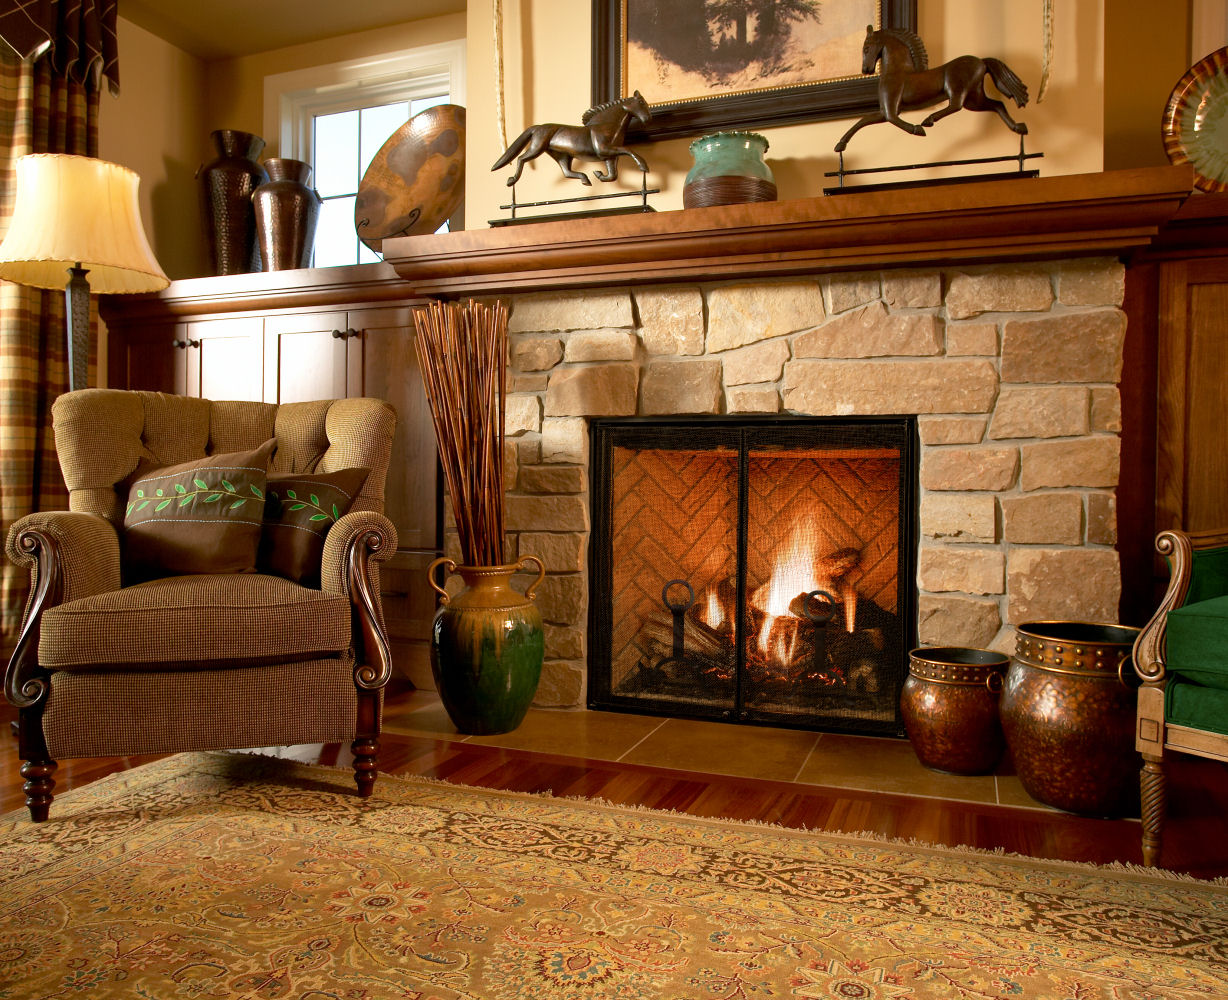 How To Make Your Fireplace More Eco Friendly And Efficient